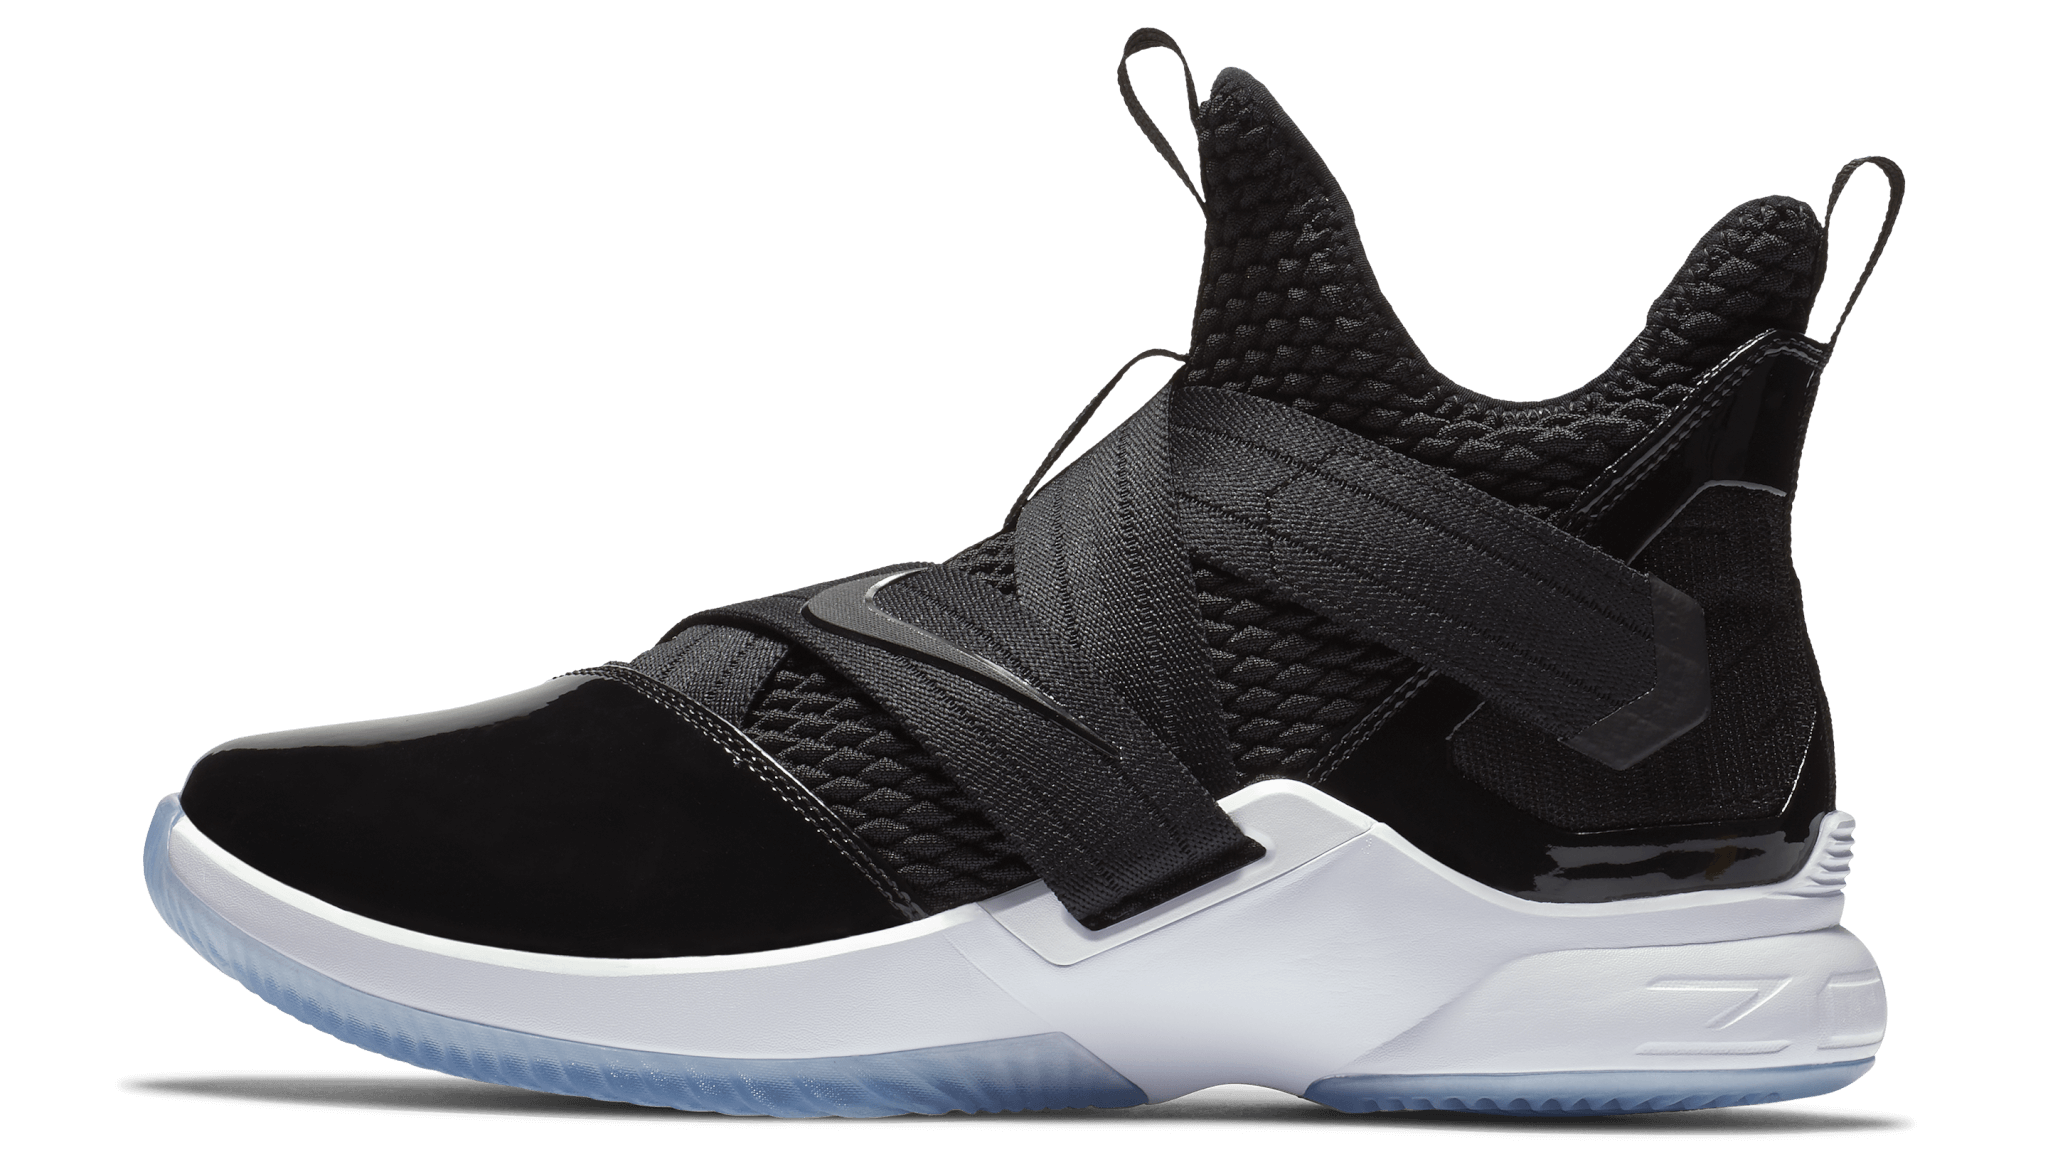 new concept e585c 22529 Nike Lebron Soldier 12 Review